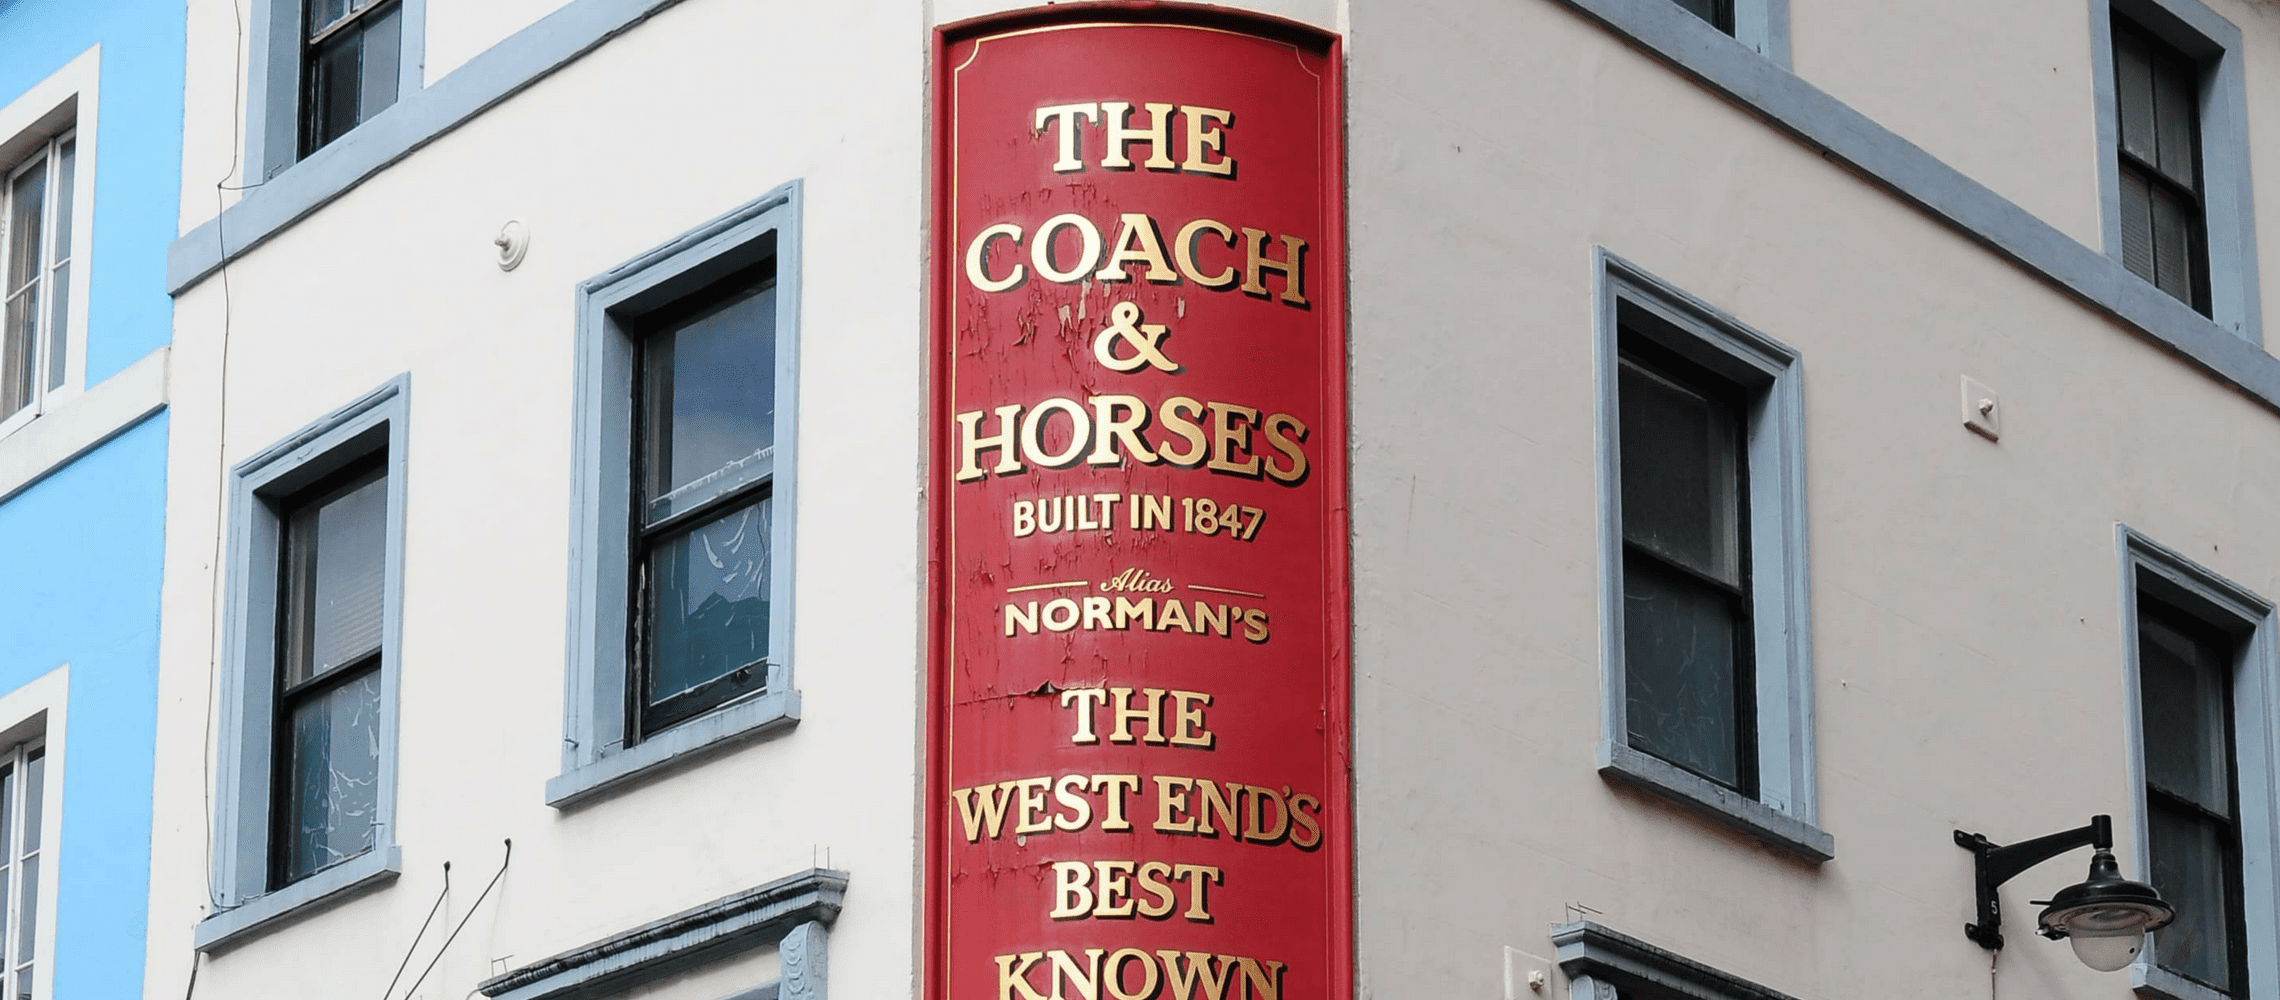 Photo for: Norman's The Coach and Horses – A Pub in Soho You Must Visit